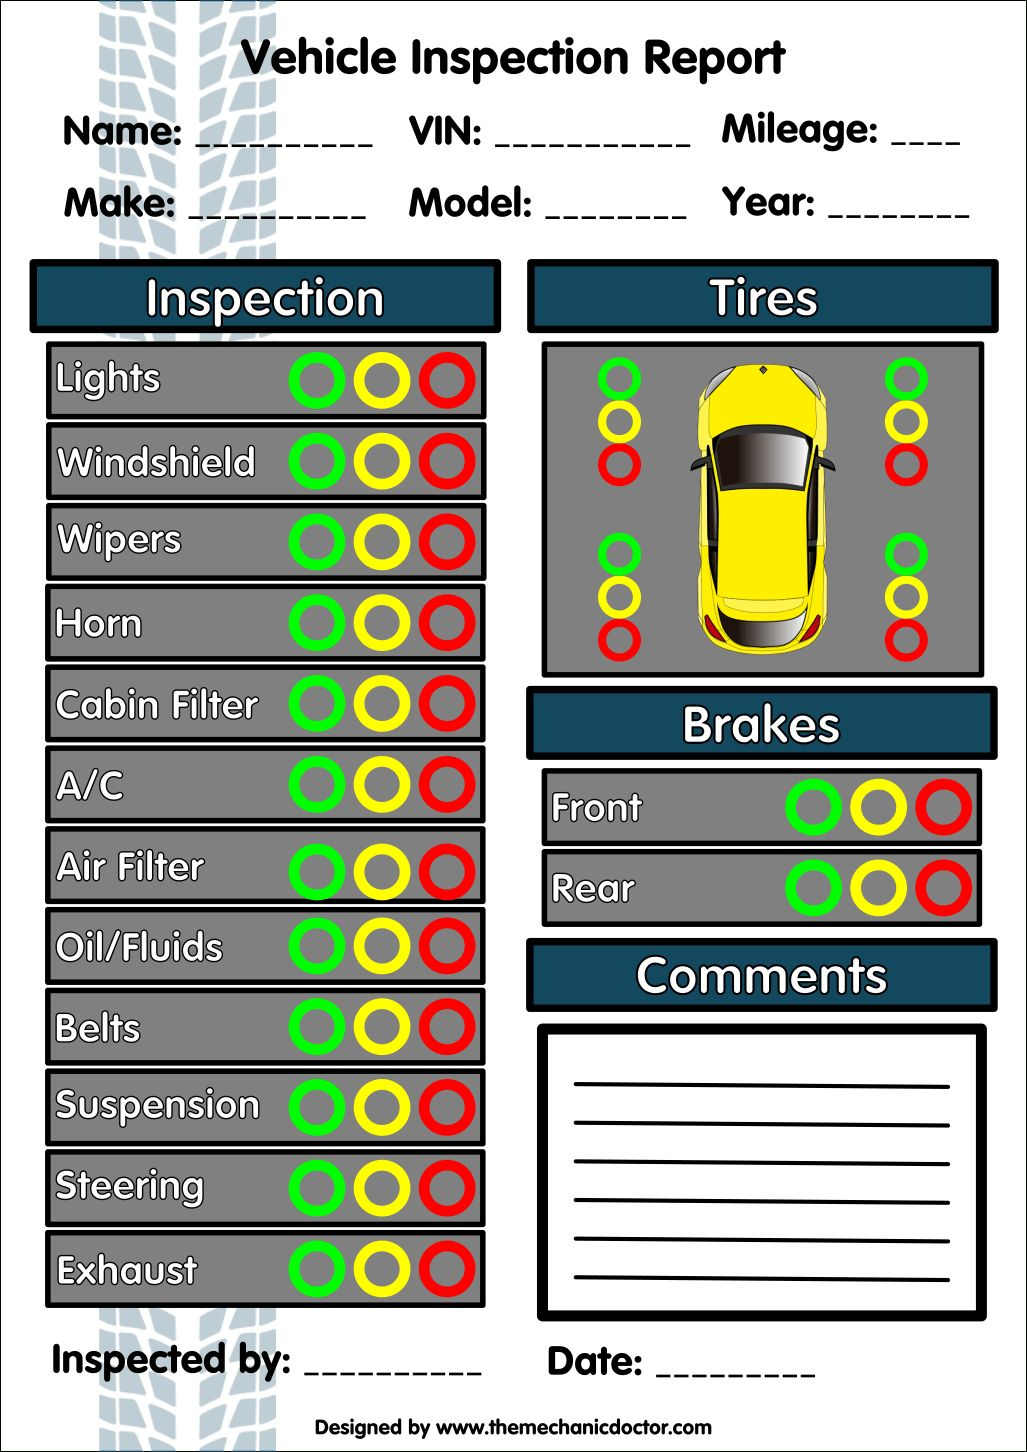 Vehicle Inspection Report Template Download Calep With Regard To Vehicle Inspection Report Templat Vehicle Inspection Inspection Checklist Checklist Template Vehicle check in sheet template